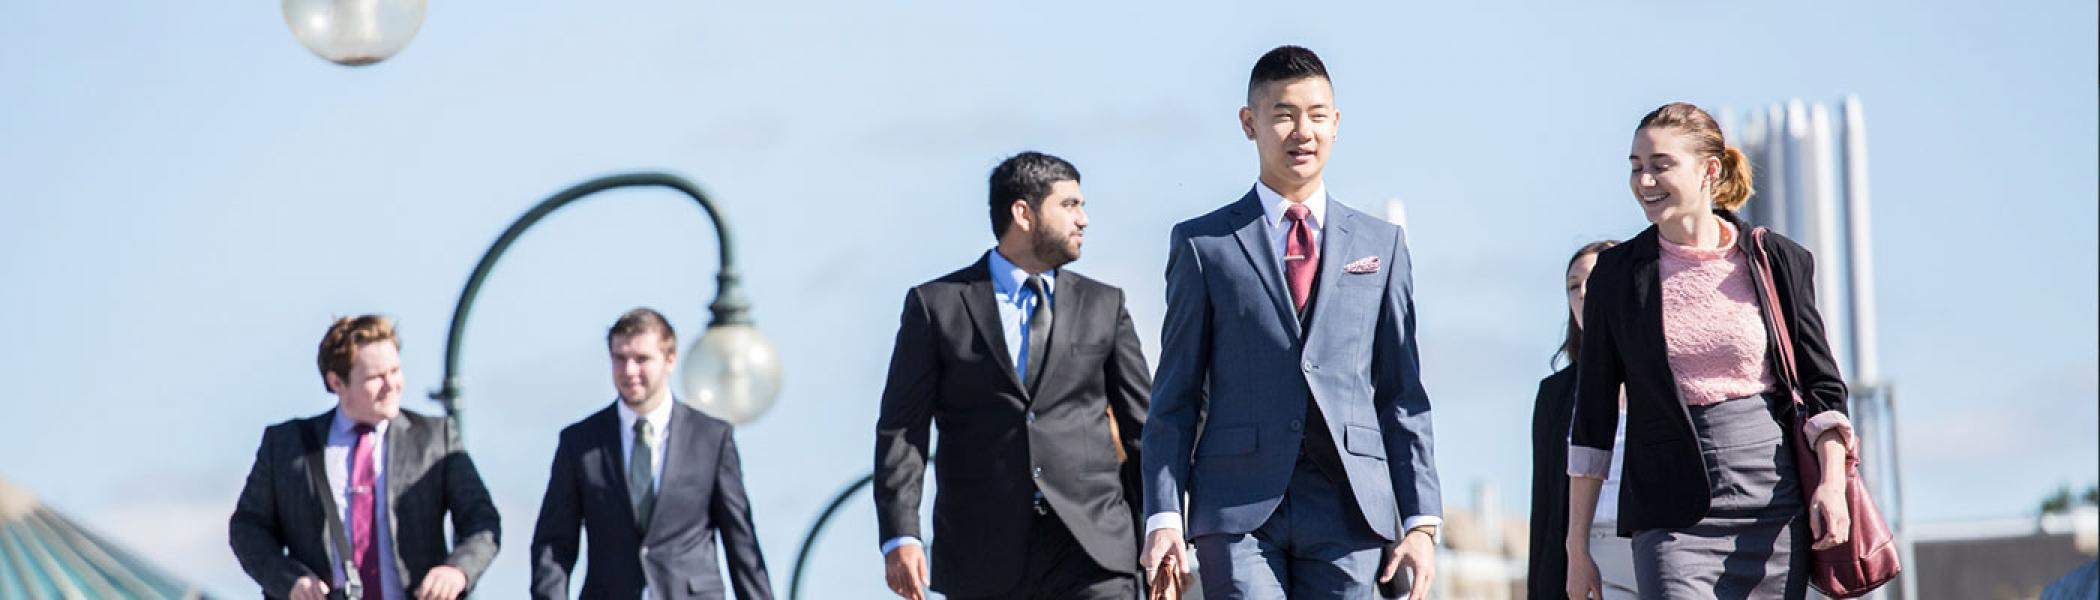 Business student walking on the bridge wearing formal clothing